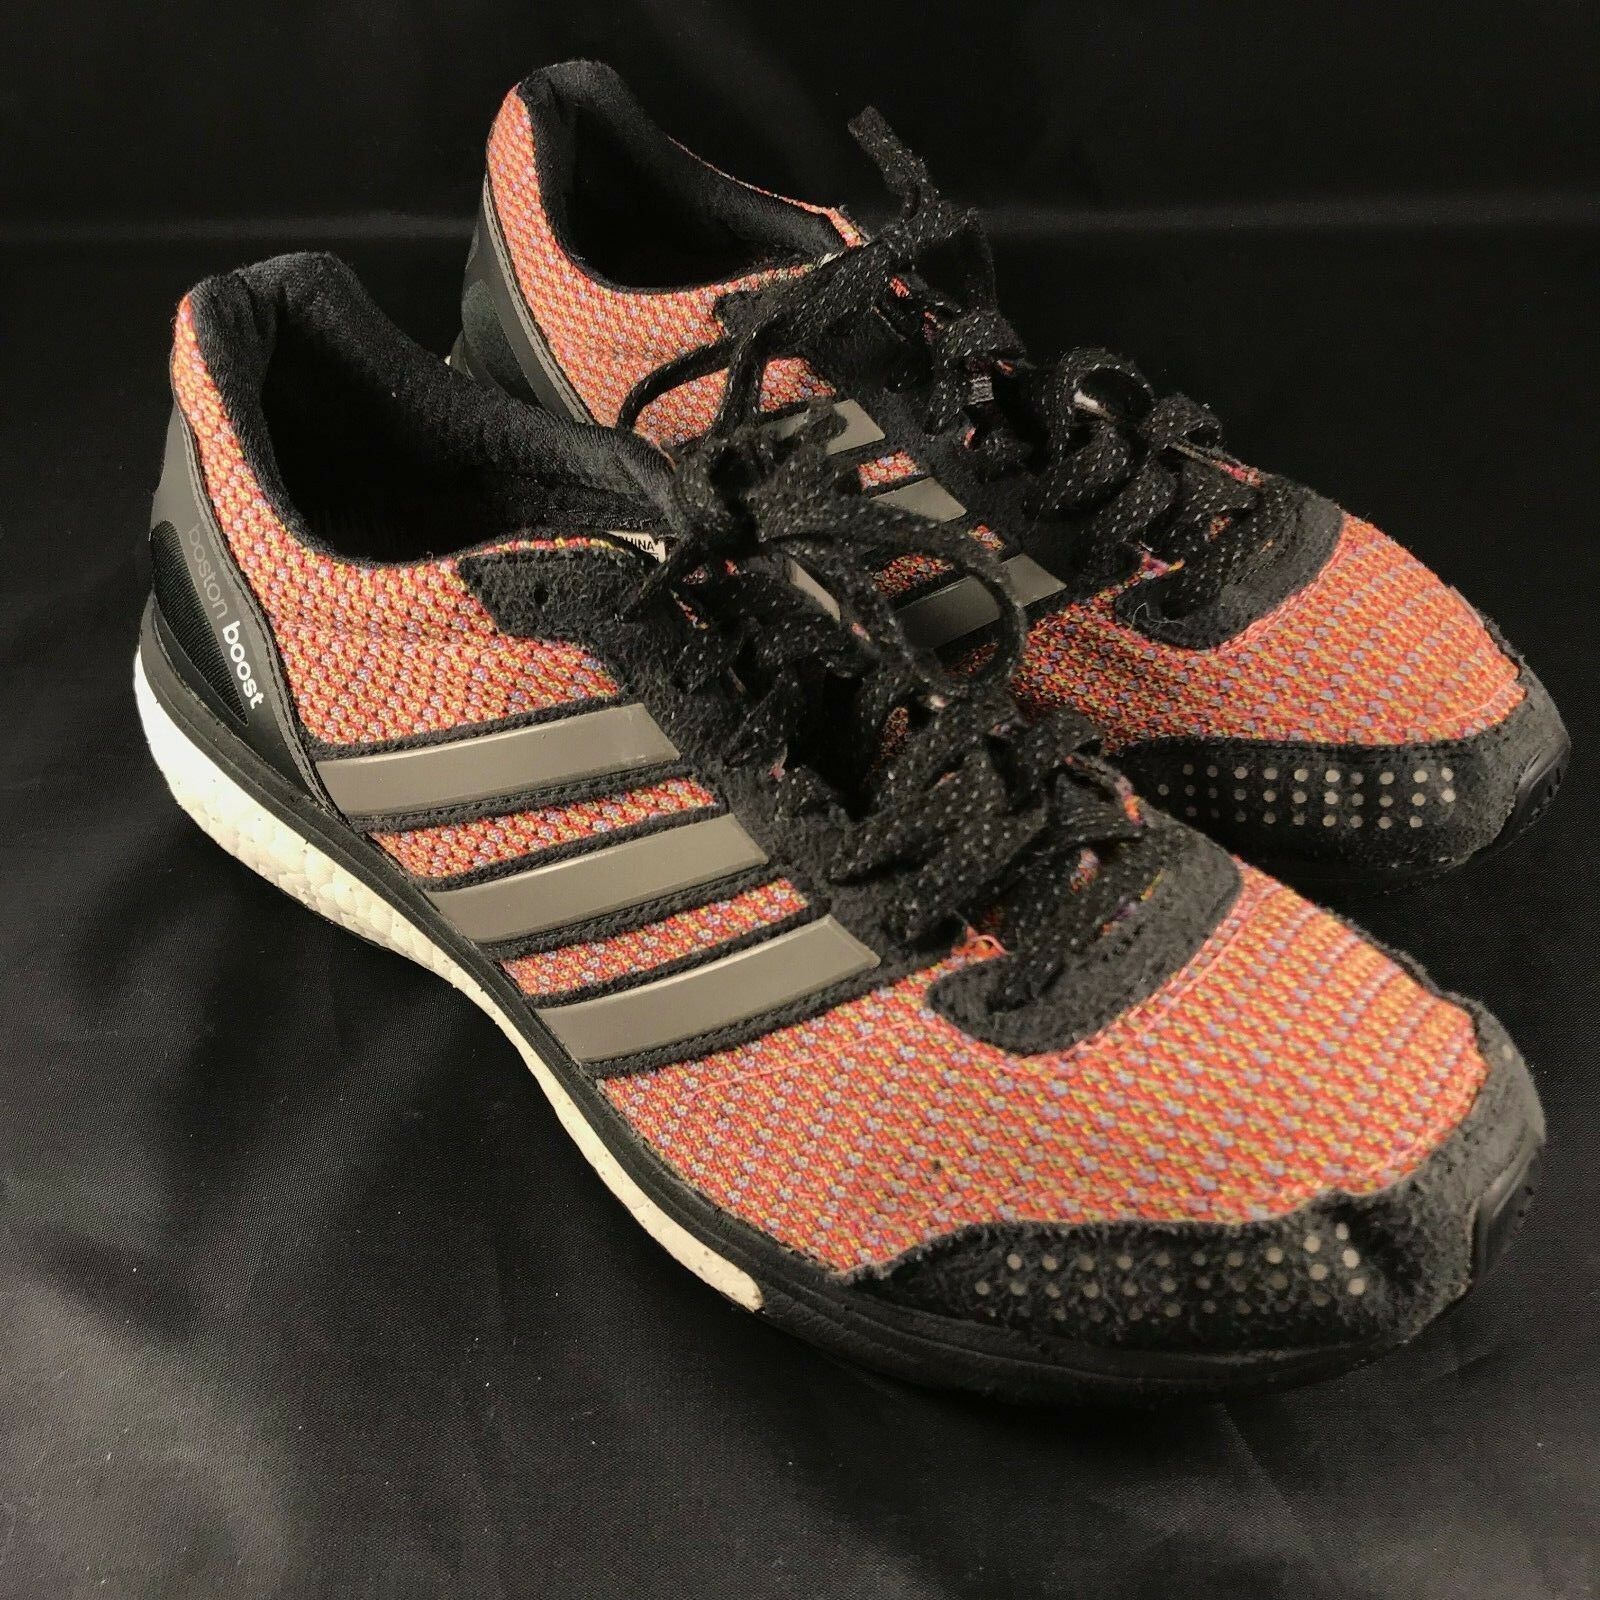 Adidas Excellent Adidas Boston Boost Mens 9.5 Red Black 43 1/3 EUR Racing Flat